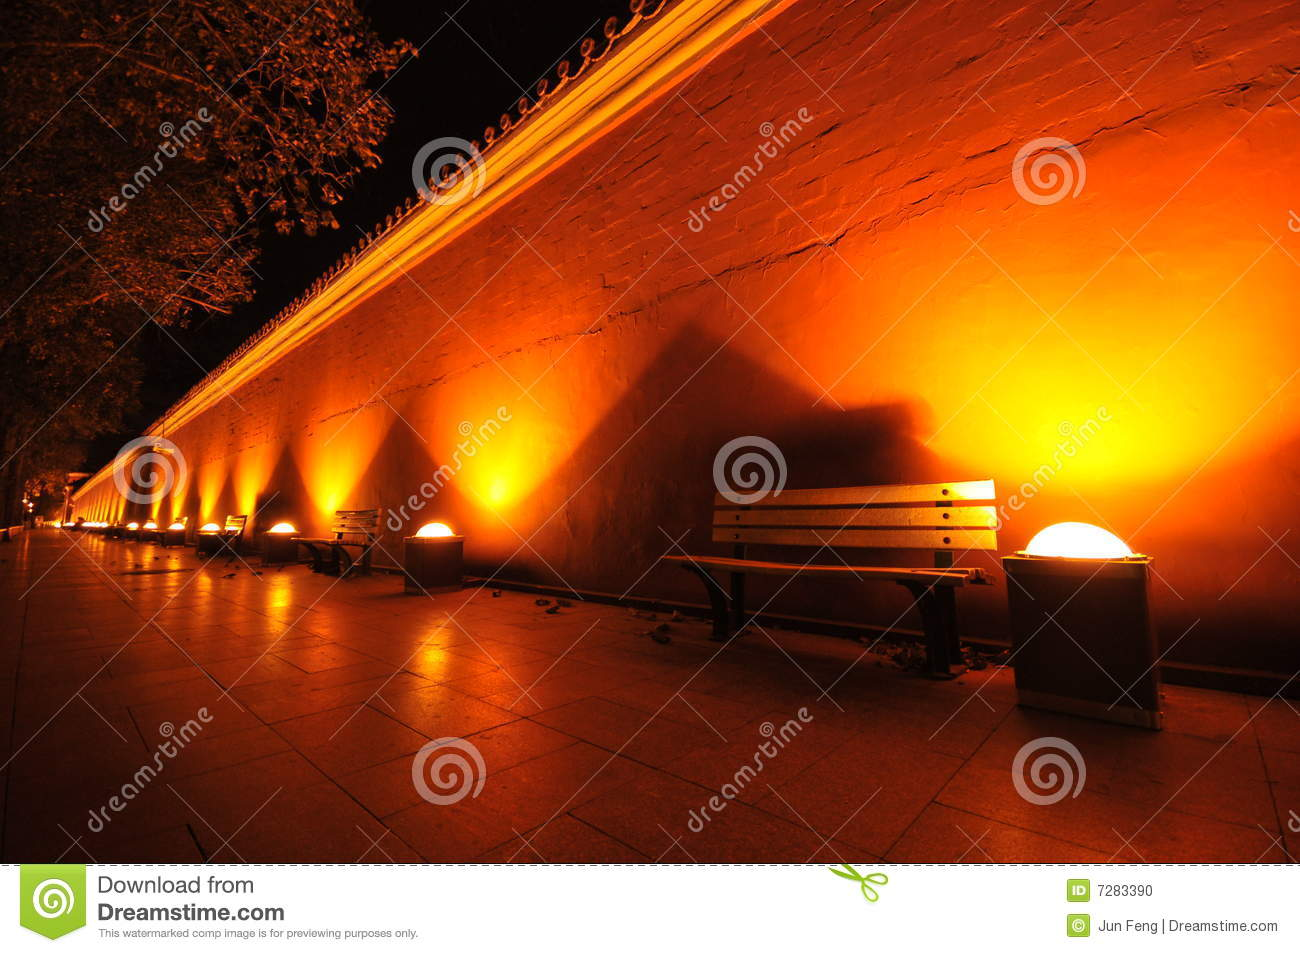 http://thumbs.dreamstime.com/z/under-dim-light-night-china-s-red-ocher-wall-7283390.jpg